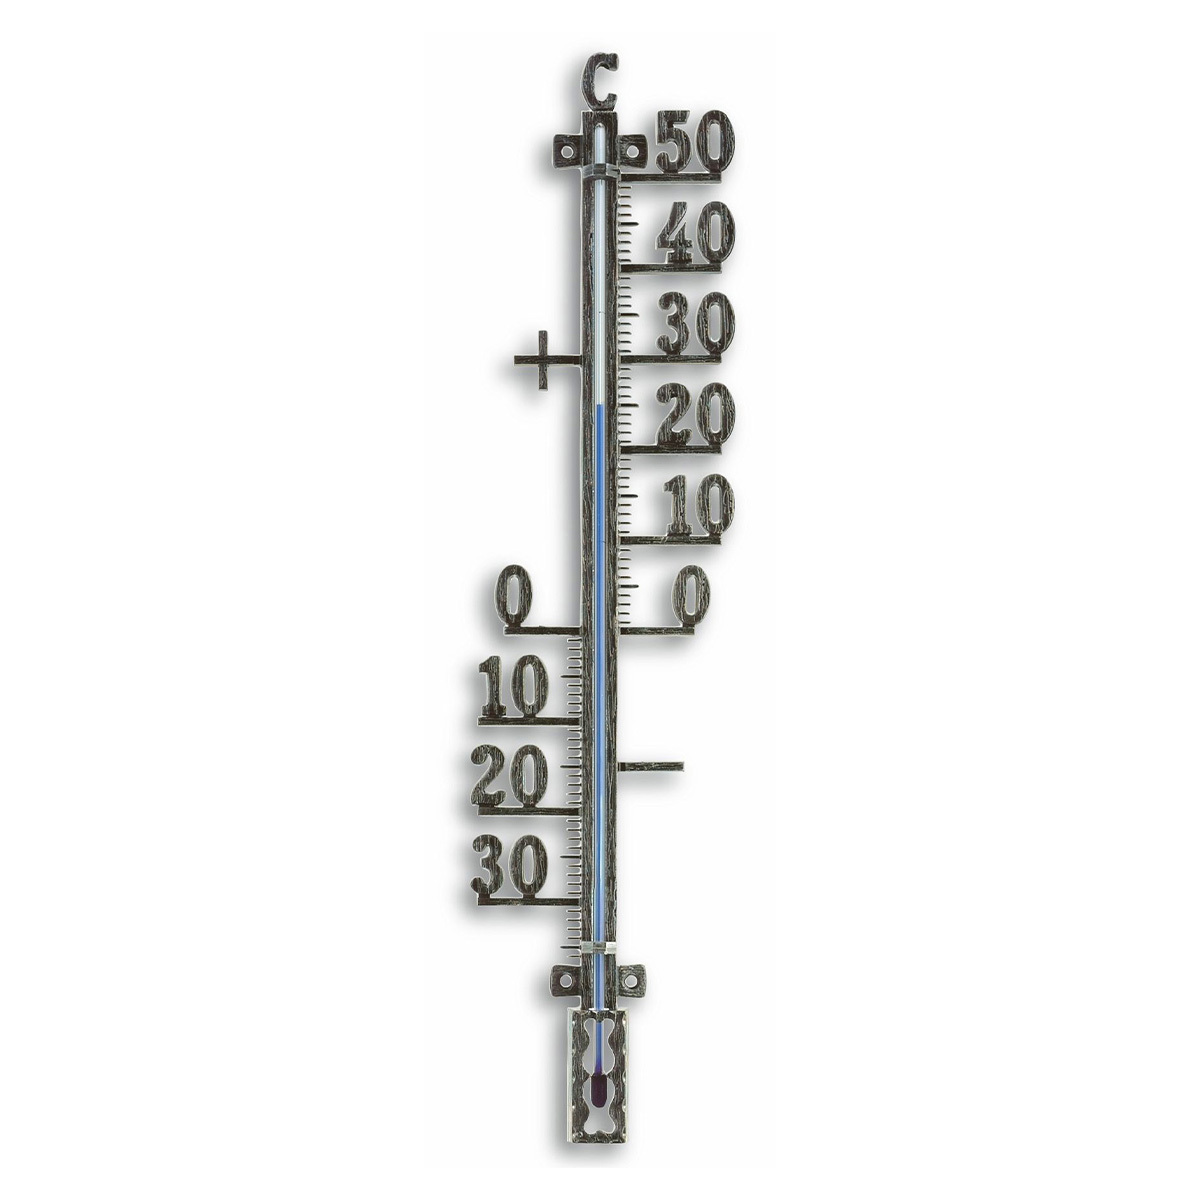 12-5002-50-analoges-aussenthermometer-metall-1200x1200px.jpg